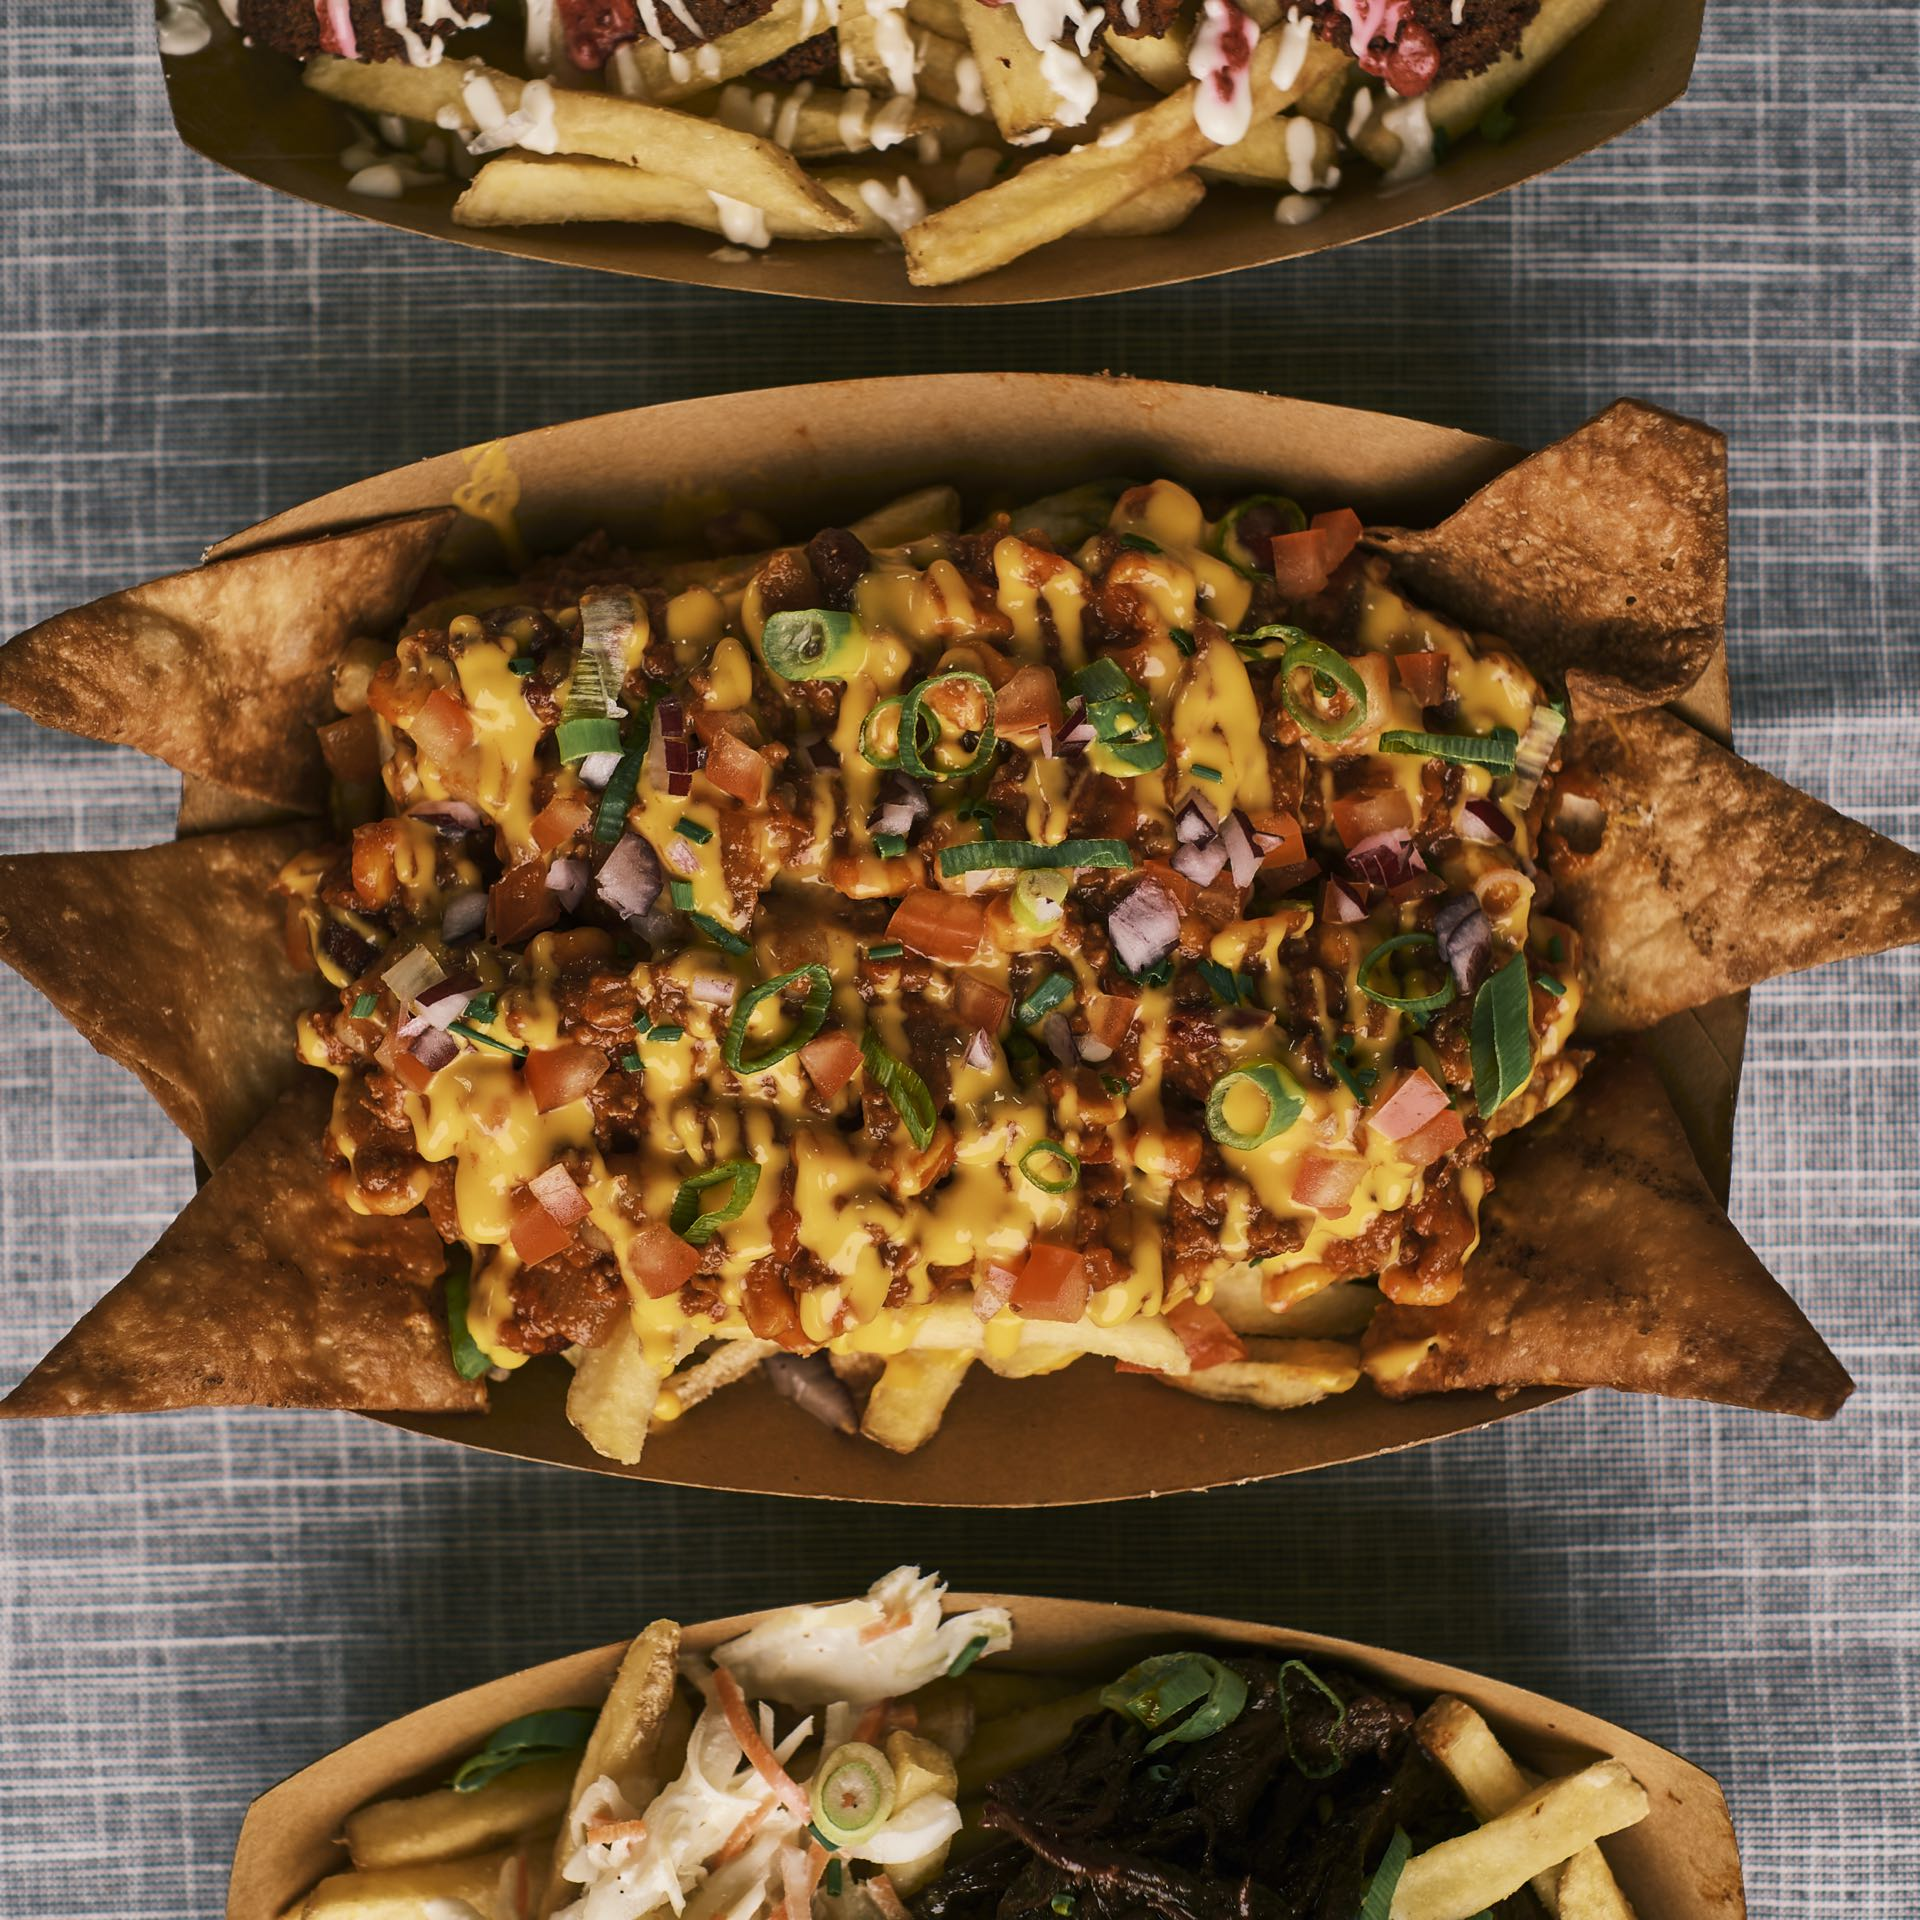 Rustic Chili Cheese Fries